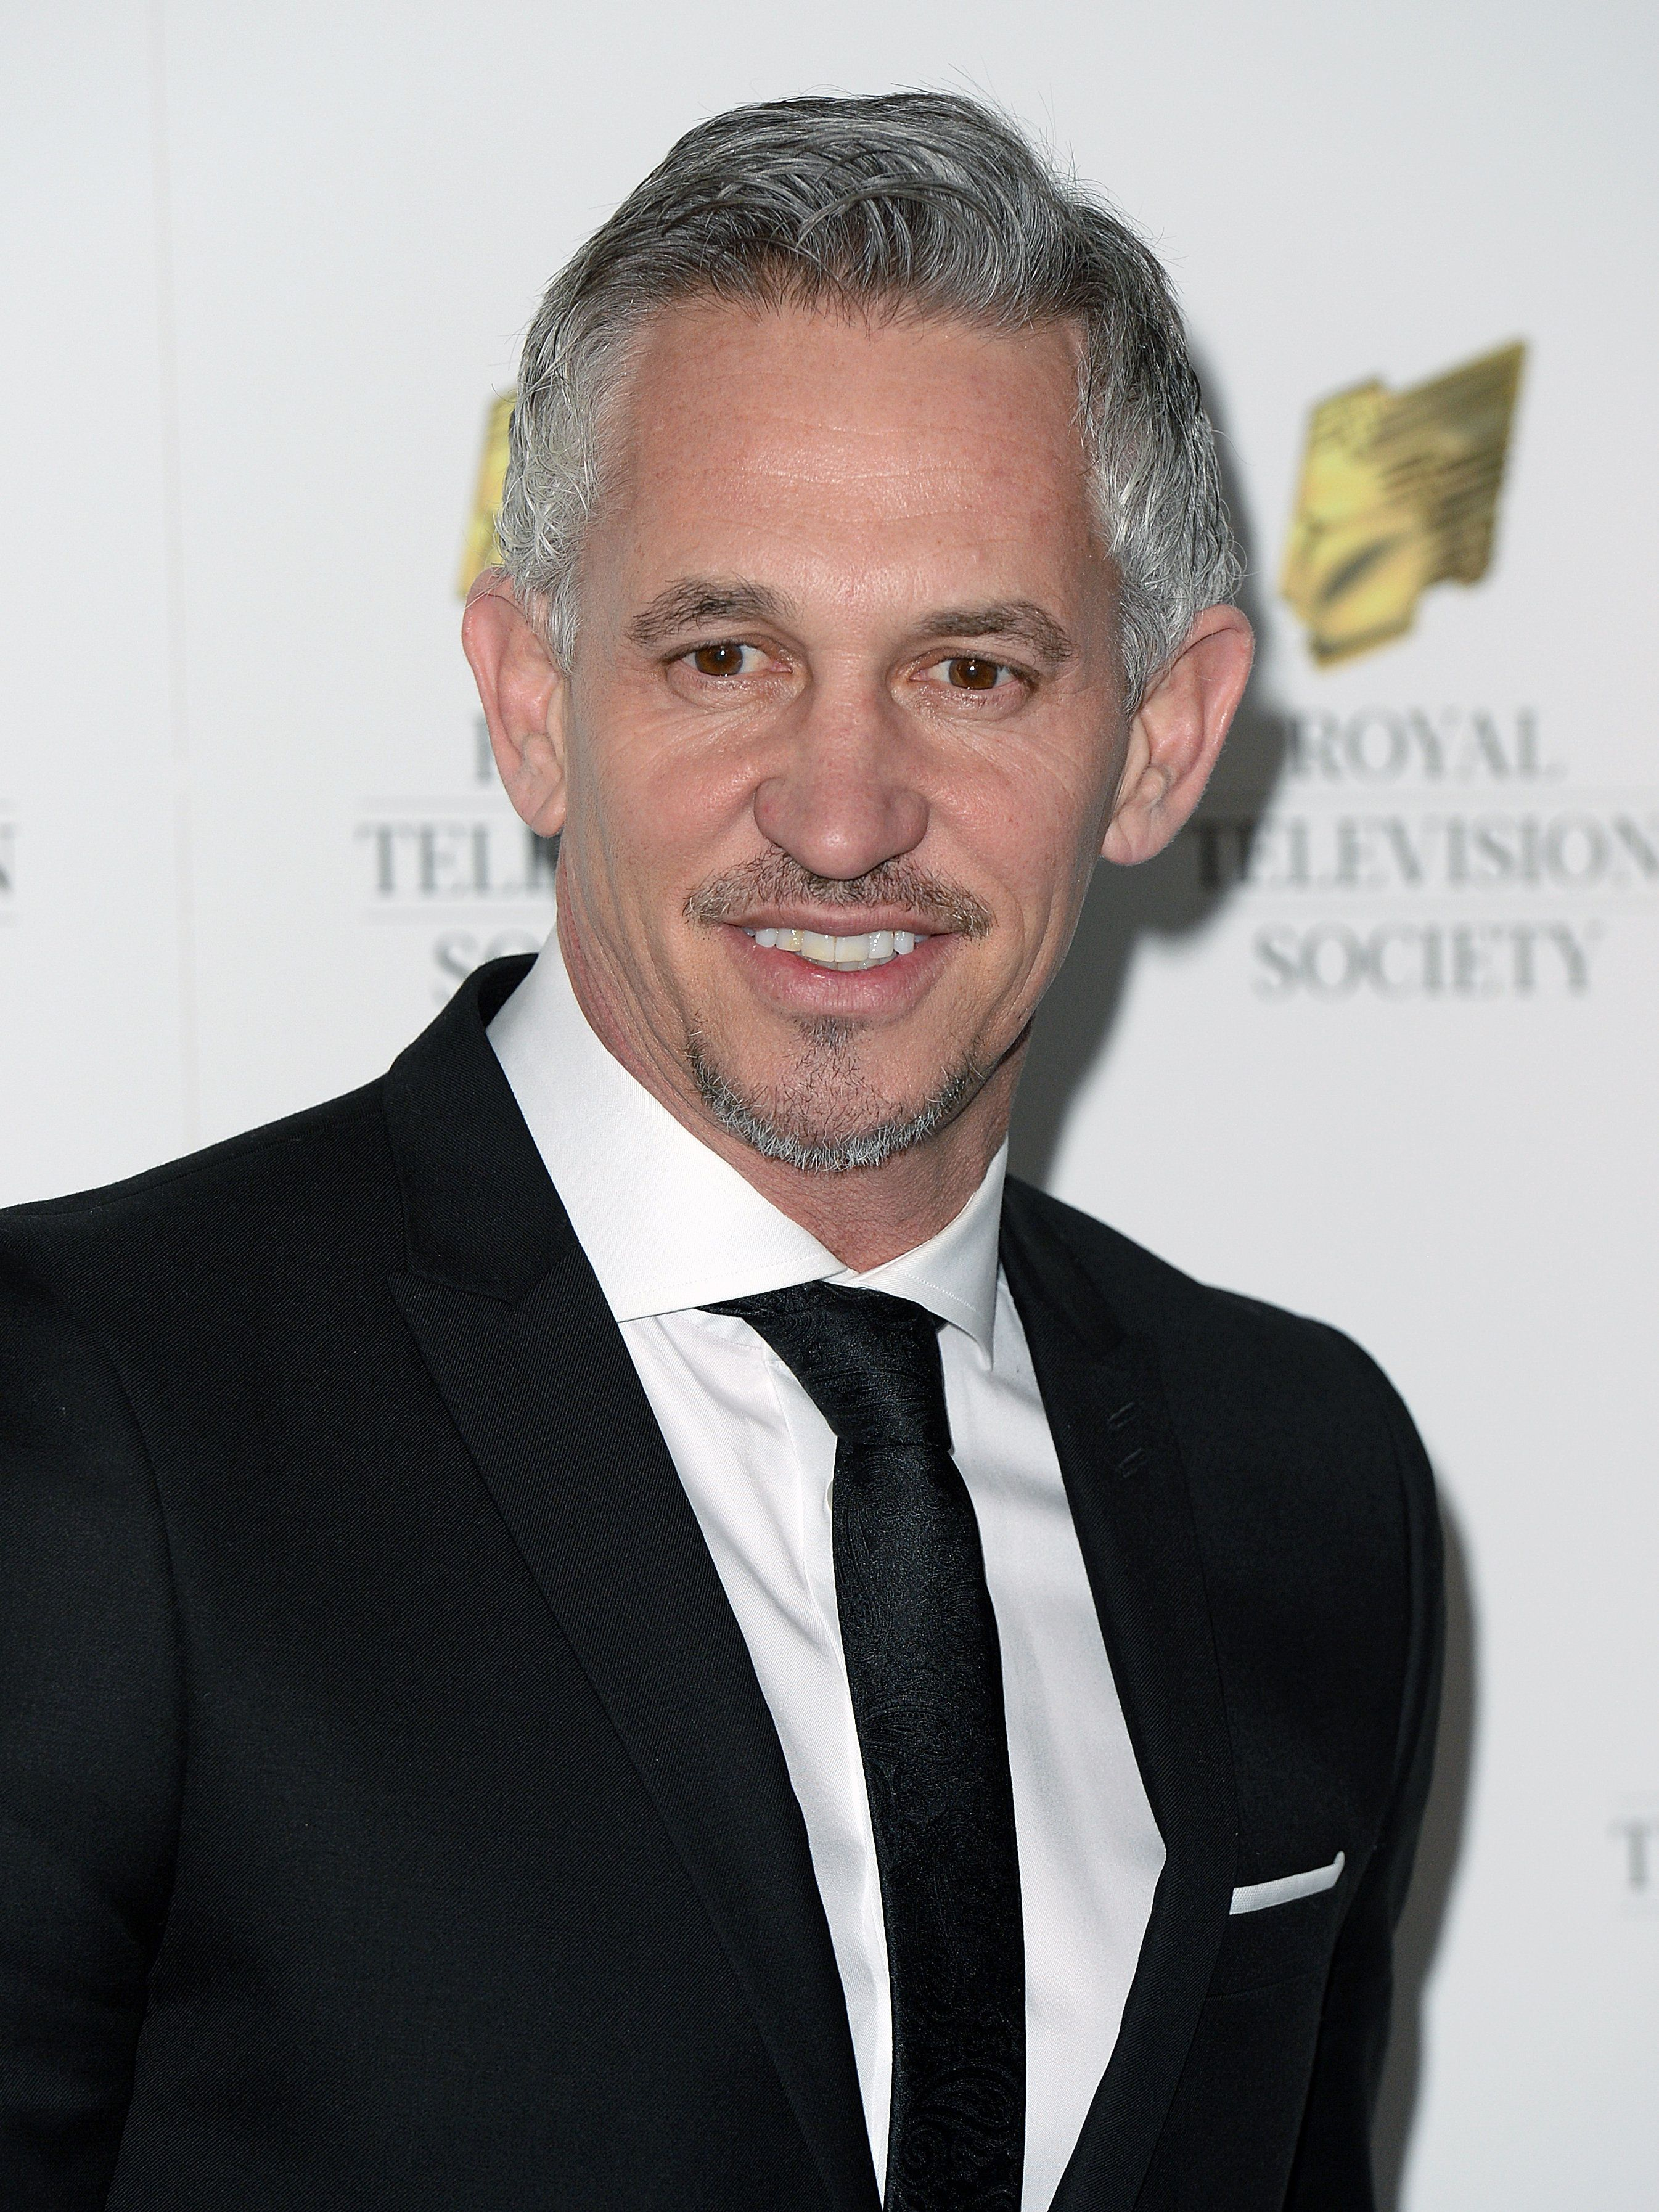 Gary Lineker voiced his support for the BBC's female